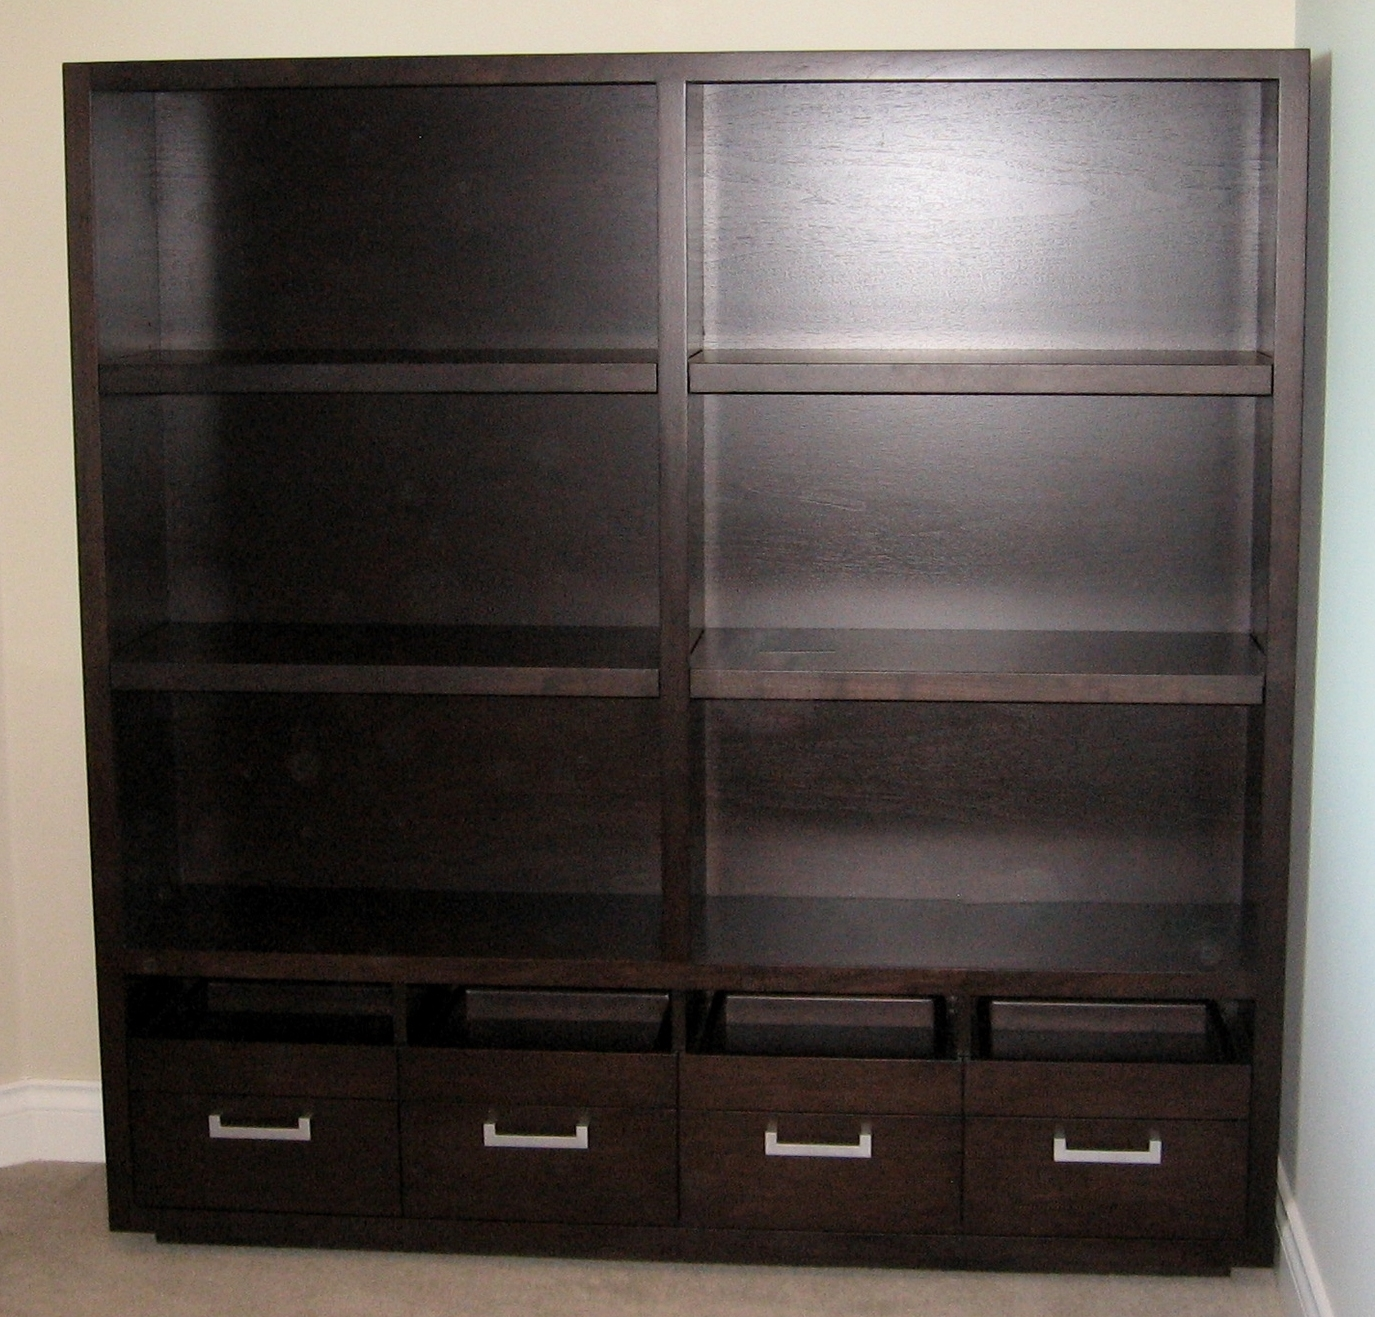 modern-style-office-book-shelf-with-bottom-drawers.JPG